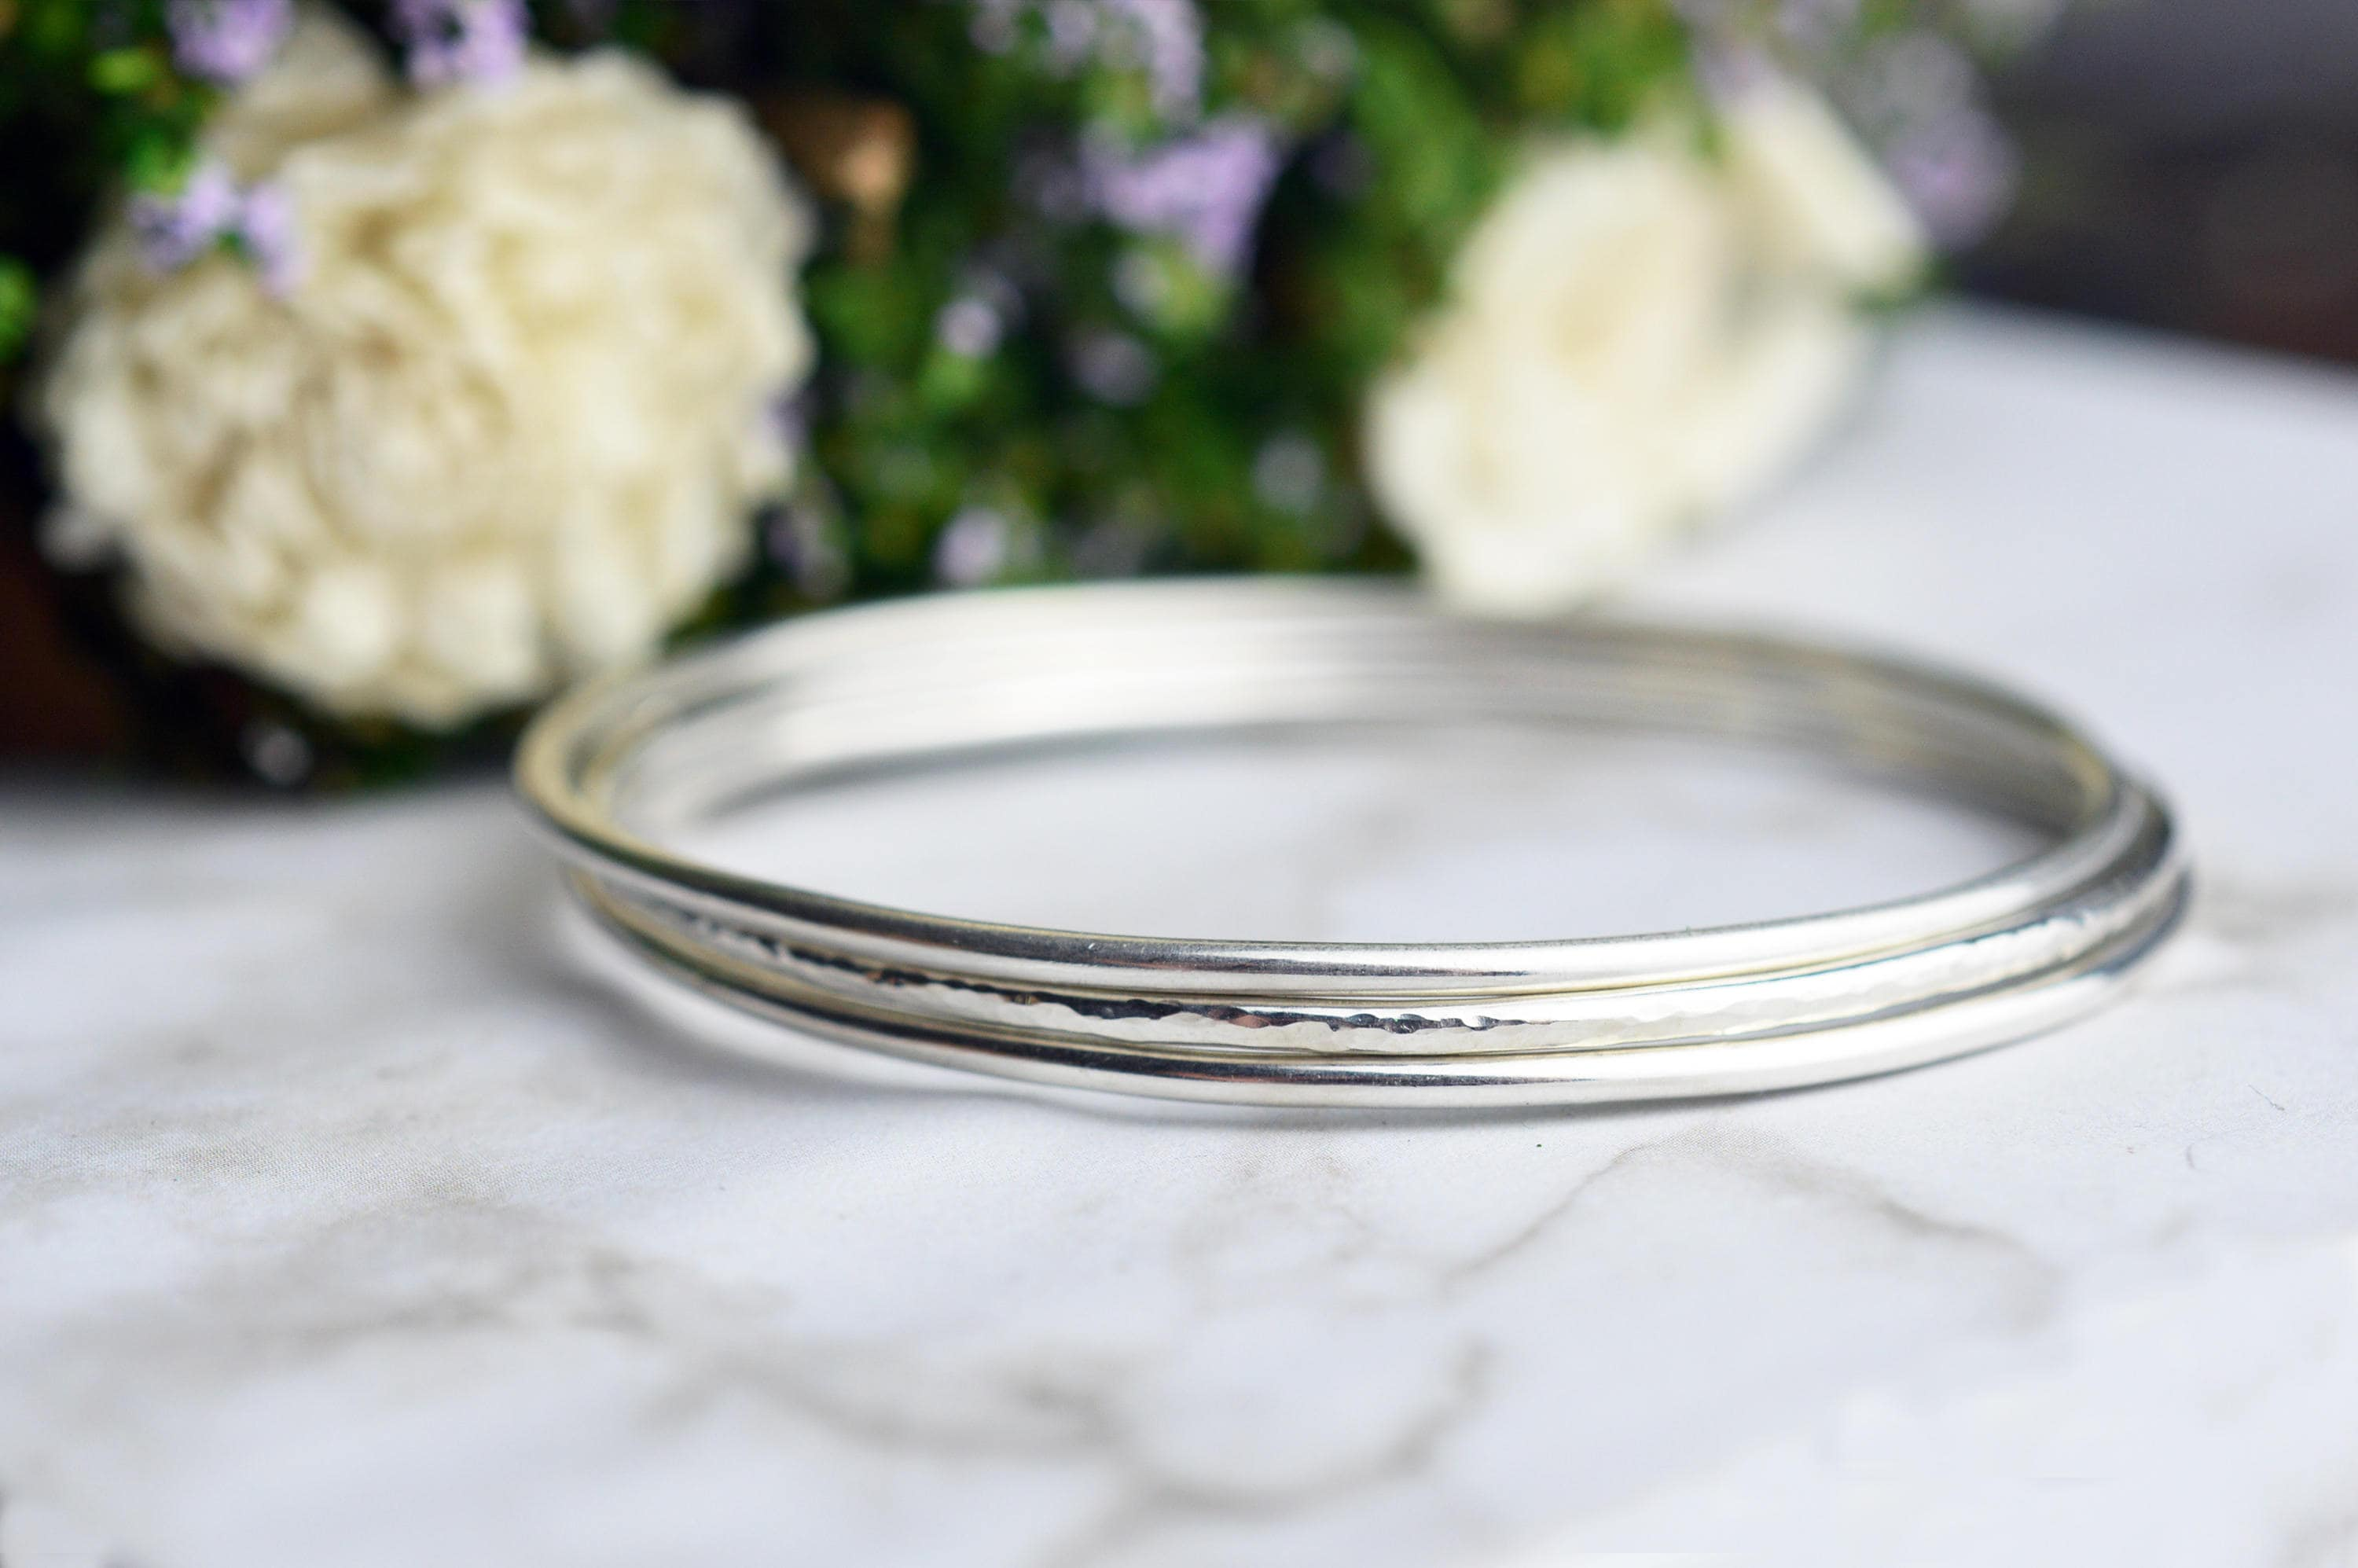 bangles bangle grams view sterling p bracelet silver mm solid length weight bracelets quick width polished plain cuff